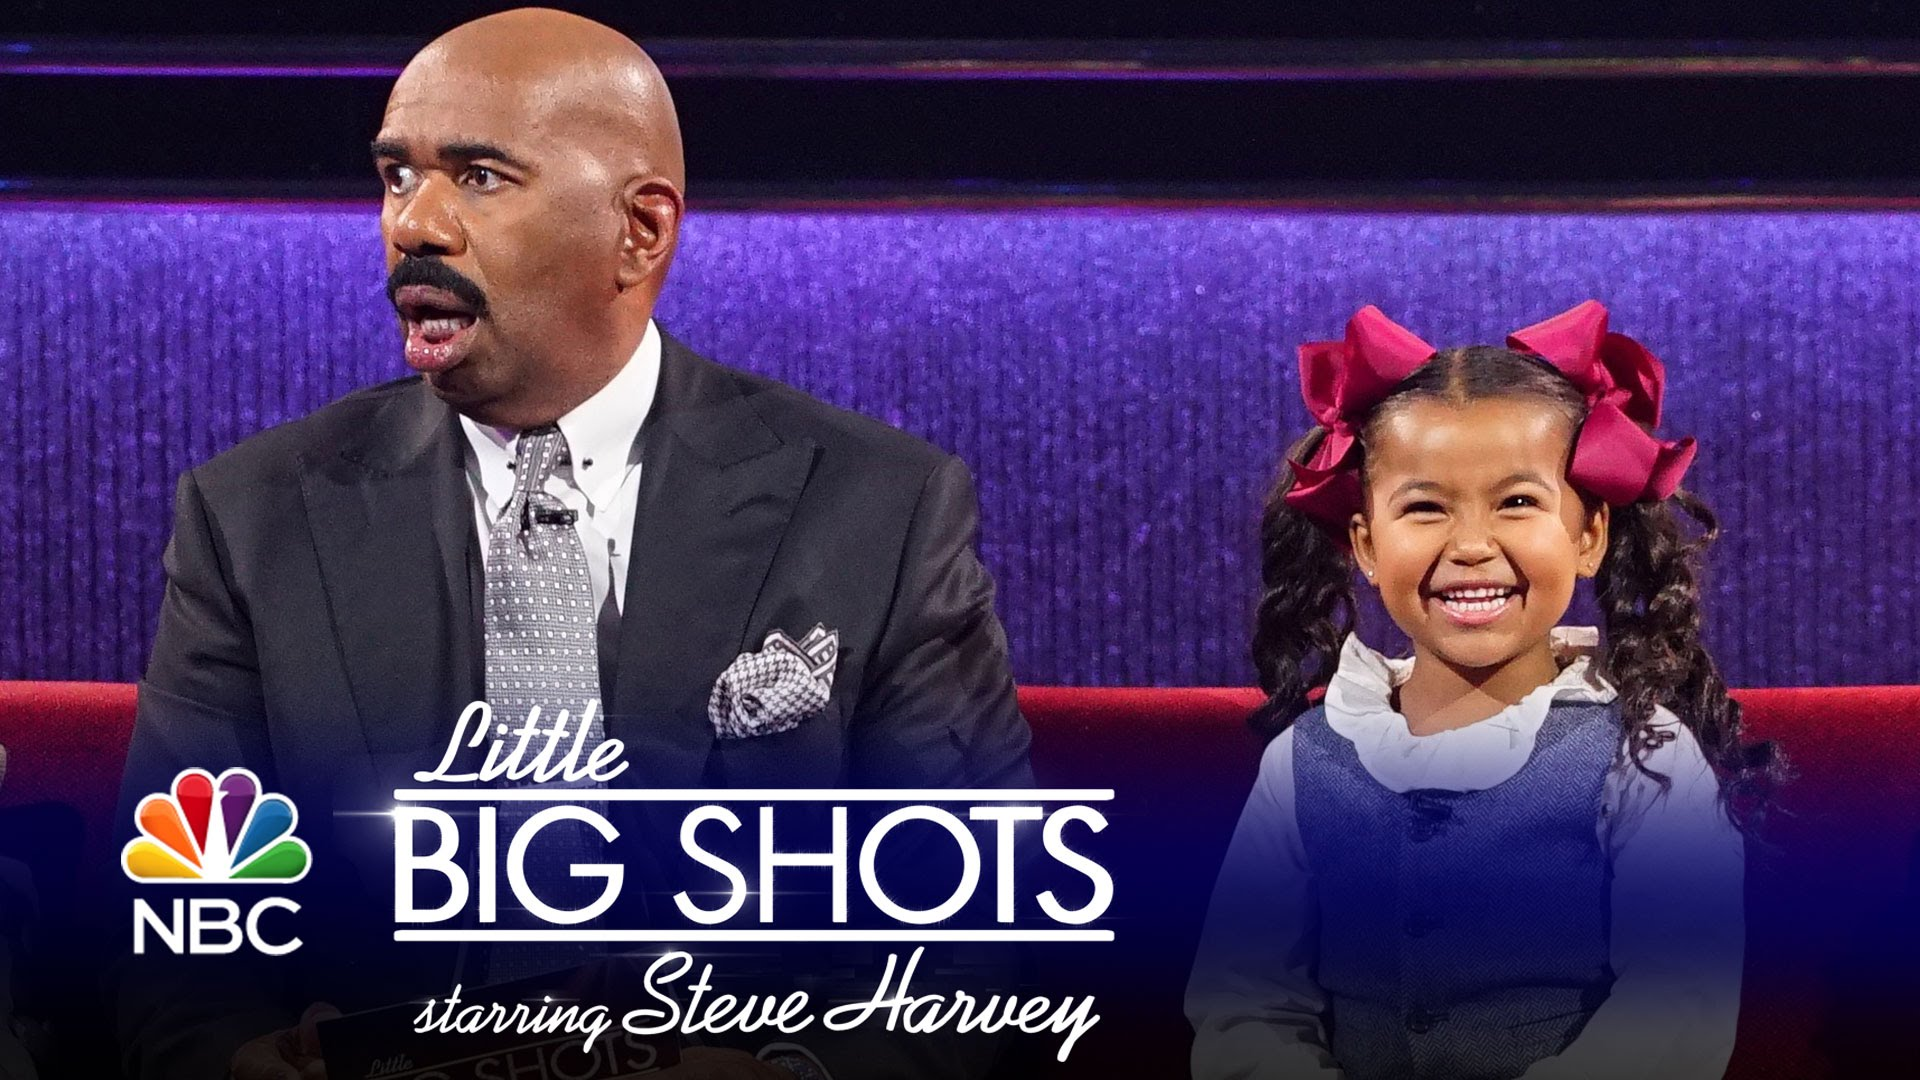 Little Big Shots – Too Cute for Words